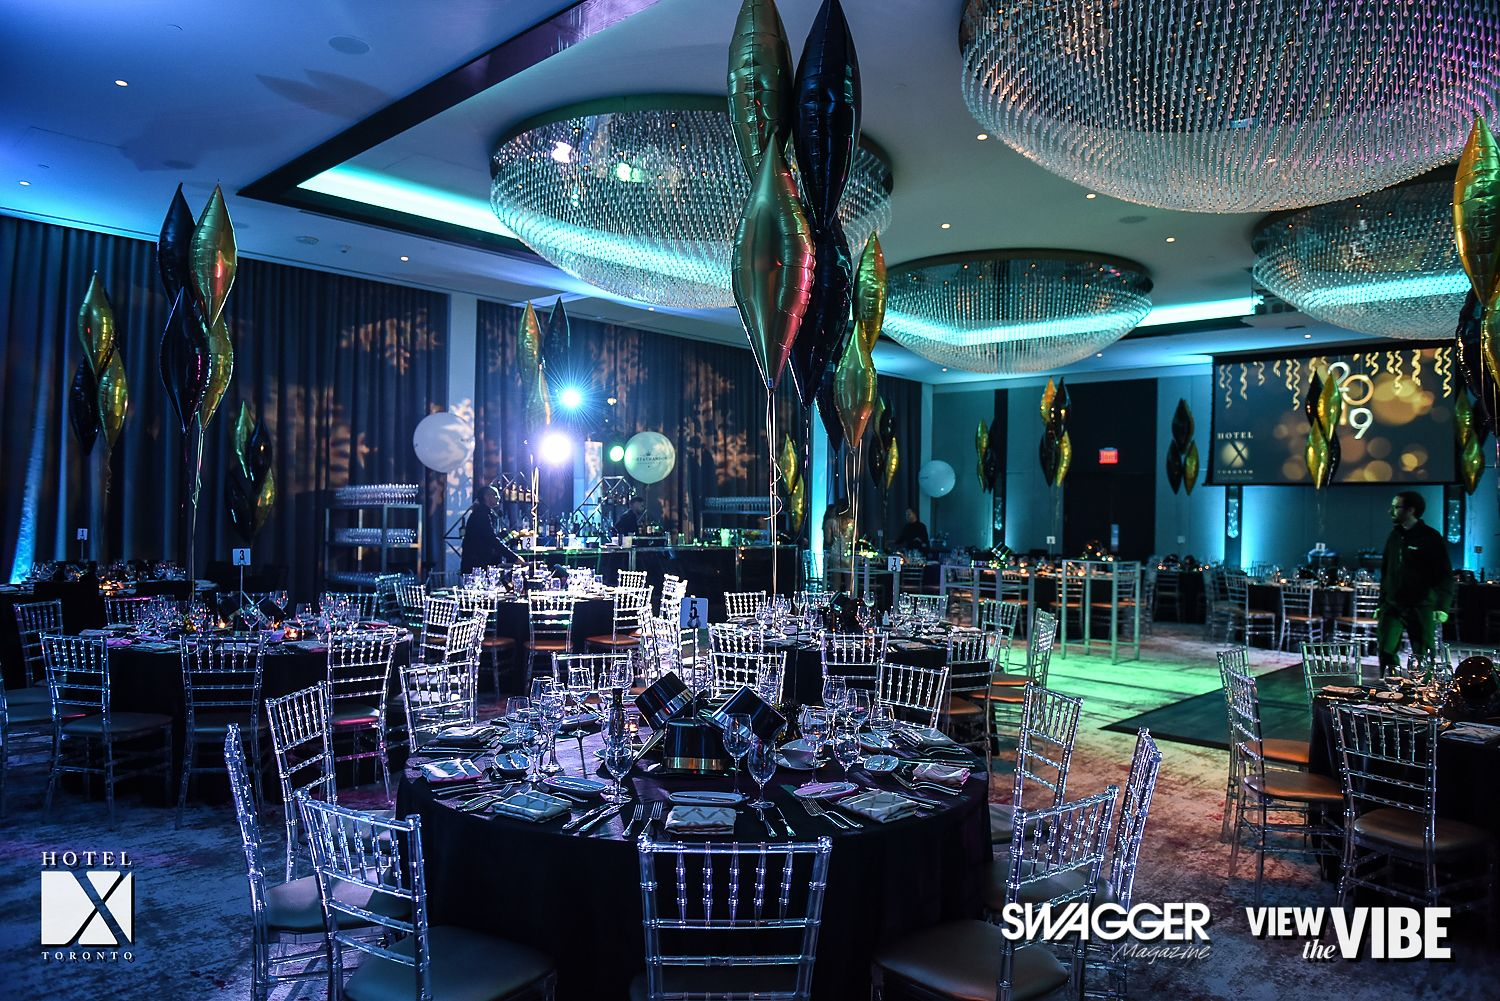 Inside The Hotel X Nye Party Hosted By The Opulent Club X Swagger